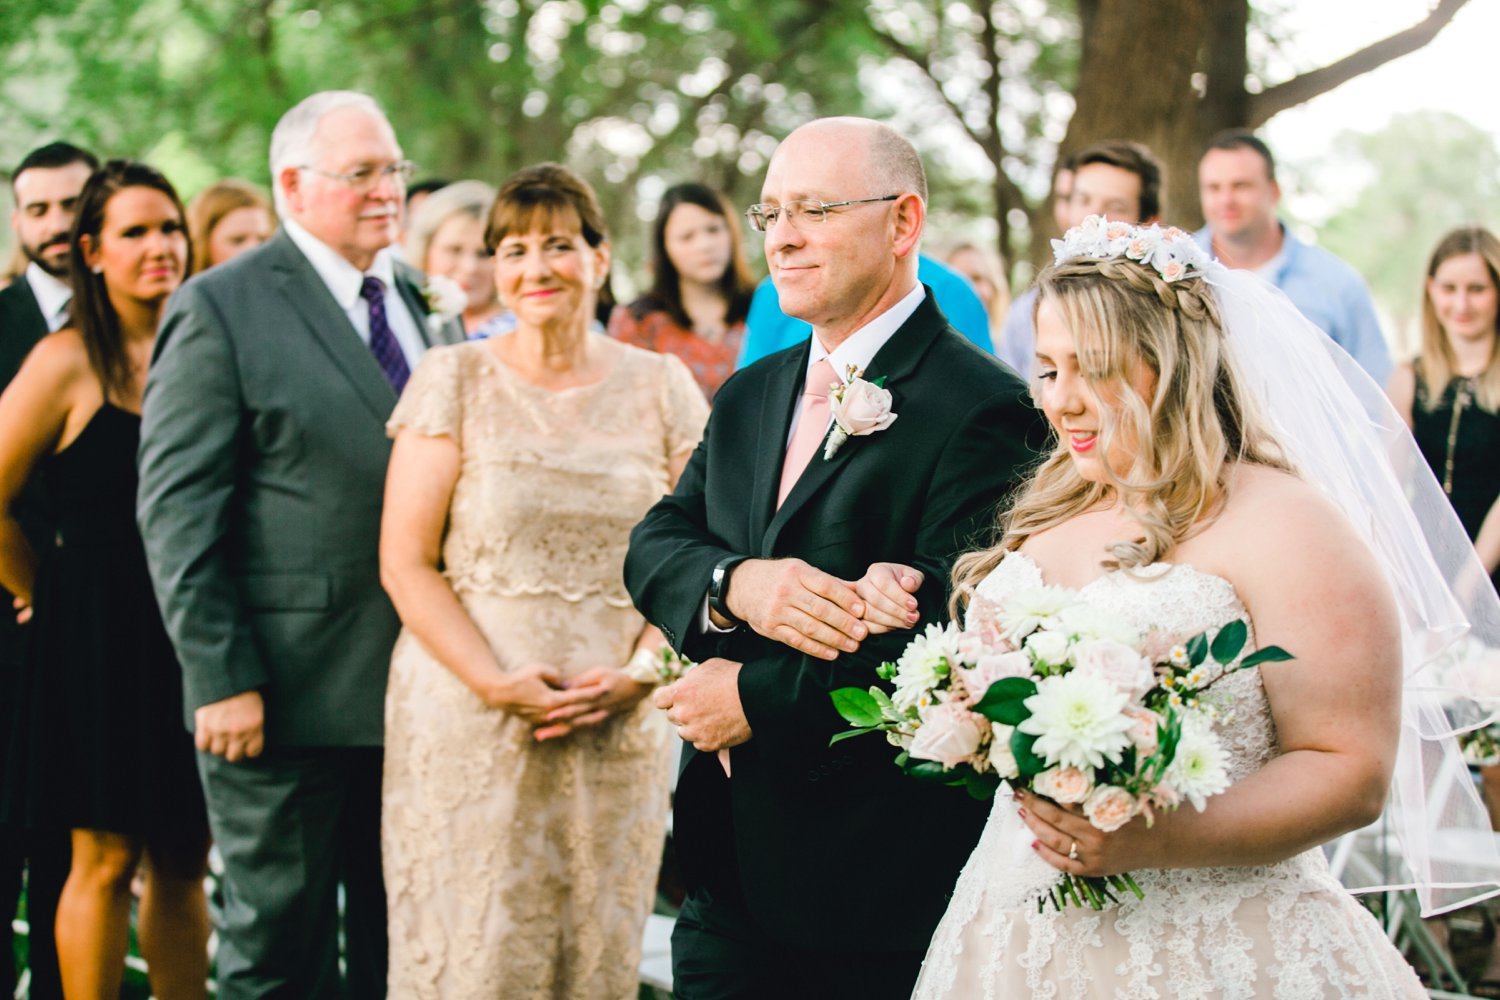 SARAH_AND_GEOFFREY_SHARP_SPIRIT_RANCH_WEDDING_ALLEEJ_LUBBOCK_TX_0041.jpg